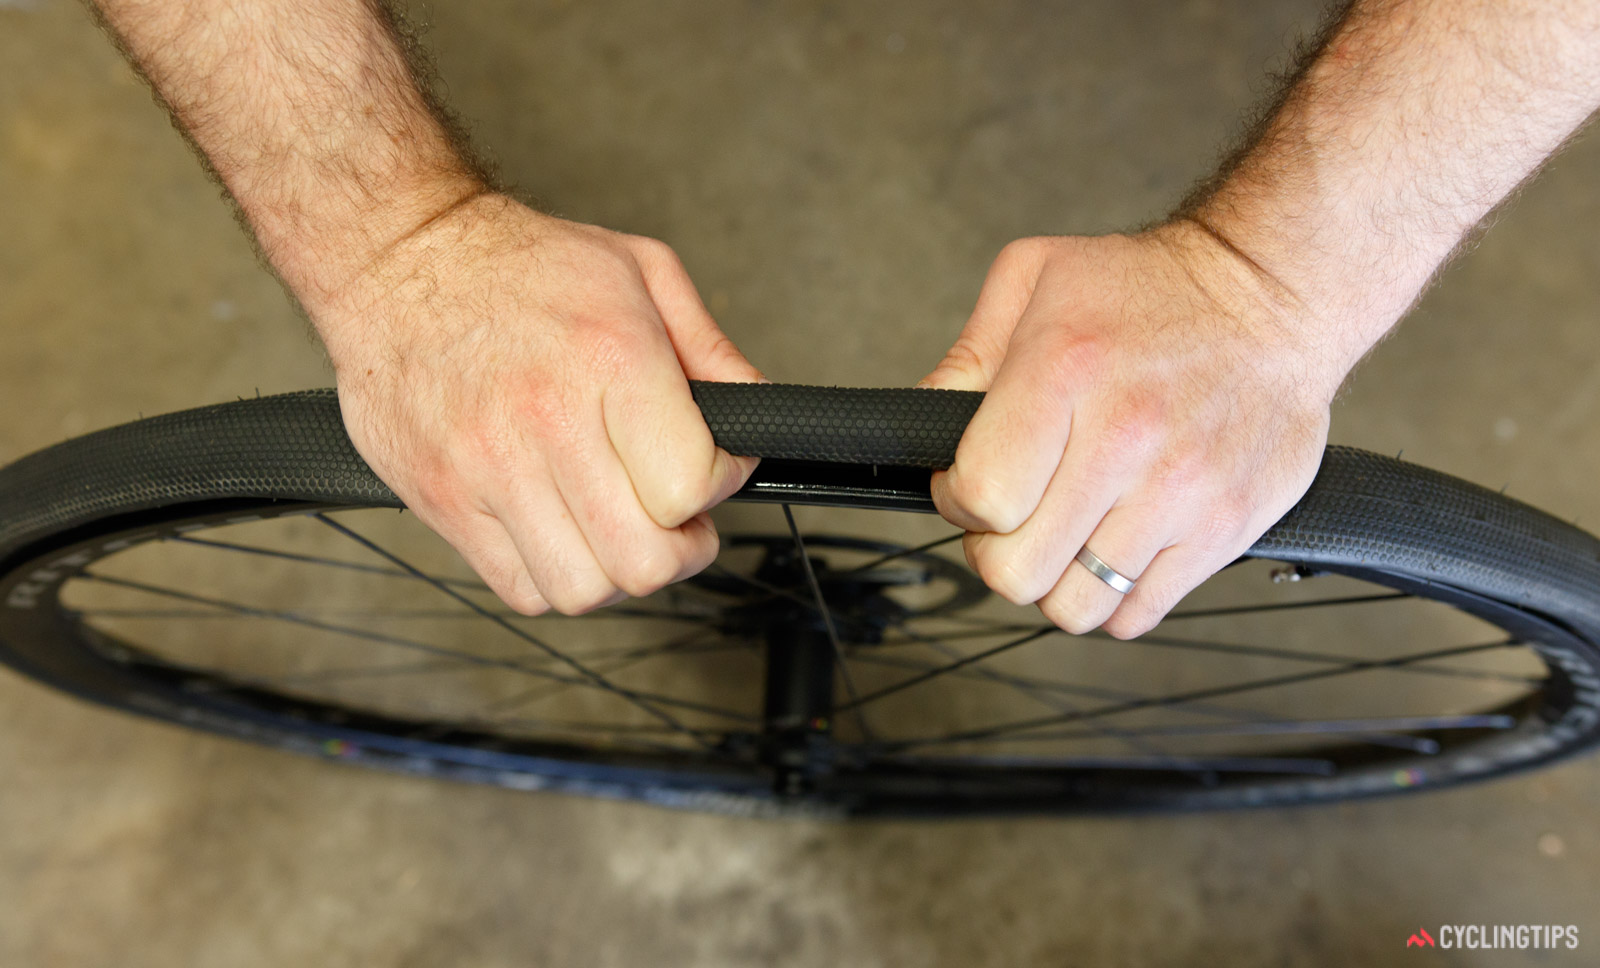 Pinching the tyre into the central channel is a key tip